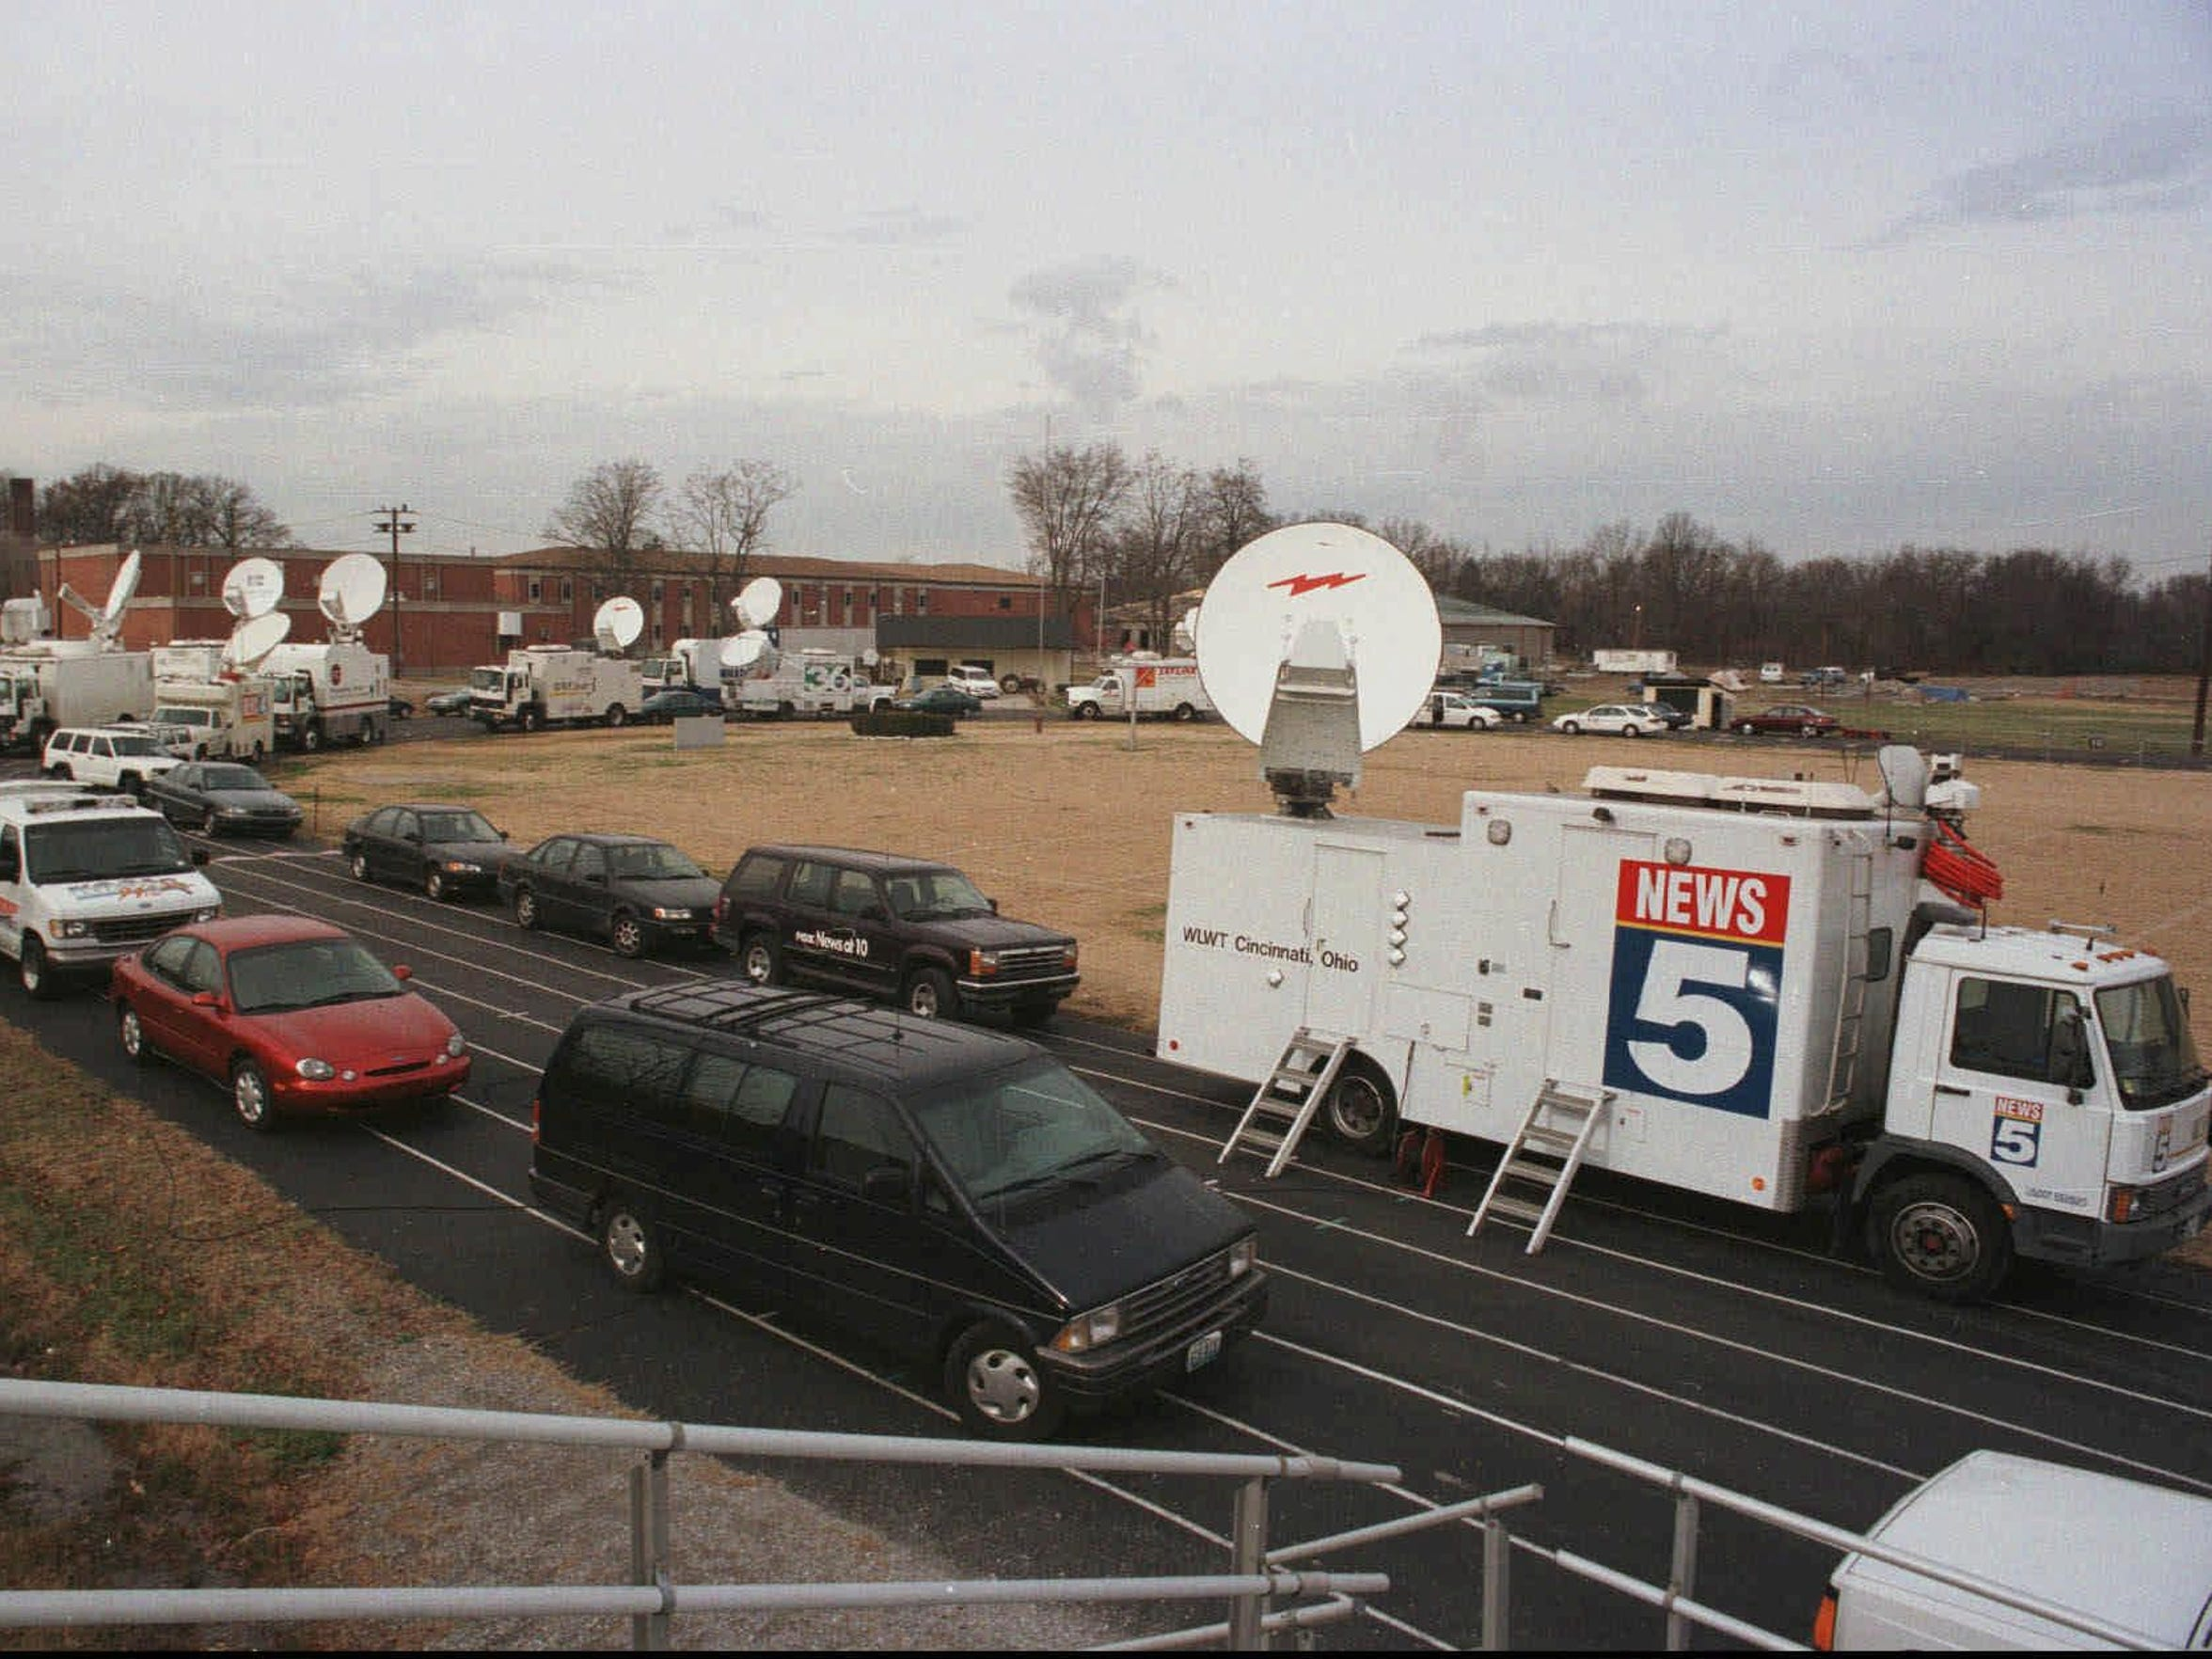 Media cars and trucks were parked almost bumper-to-bumper on the running track behind Heath High School on Dec. 1, 1997, the day a student opened fire, killing three classmates and injuring five more. Victim Hollan Holm, now 35, tells his story in Aftermath, a podcast focusing on gunshot survivors. (File photo/Pat McDonogh)